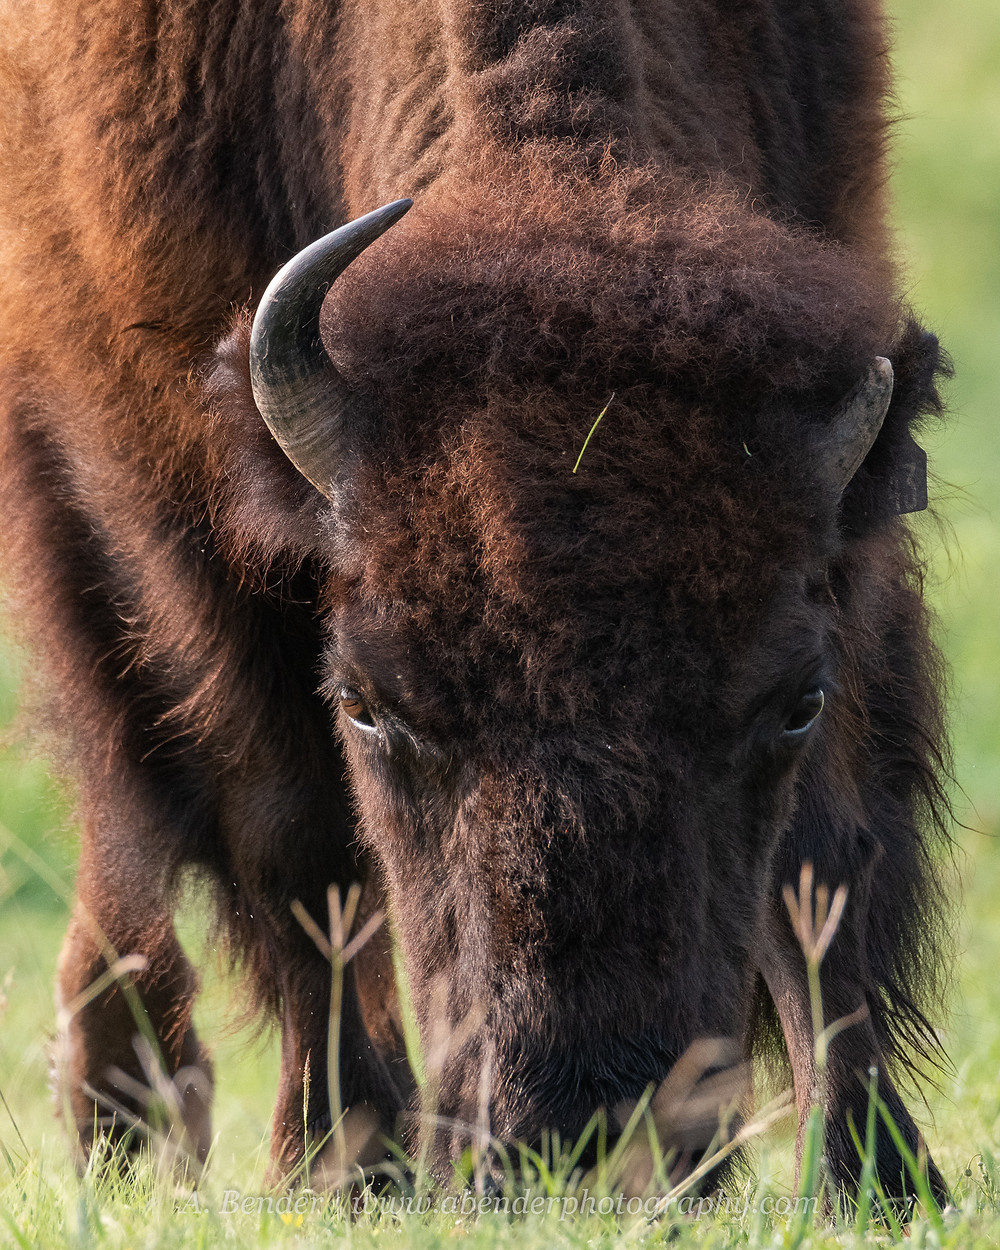 A southern plains bison grazes in morning light in northern Texas | A Bender Photography LLC